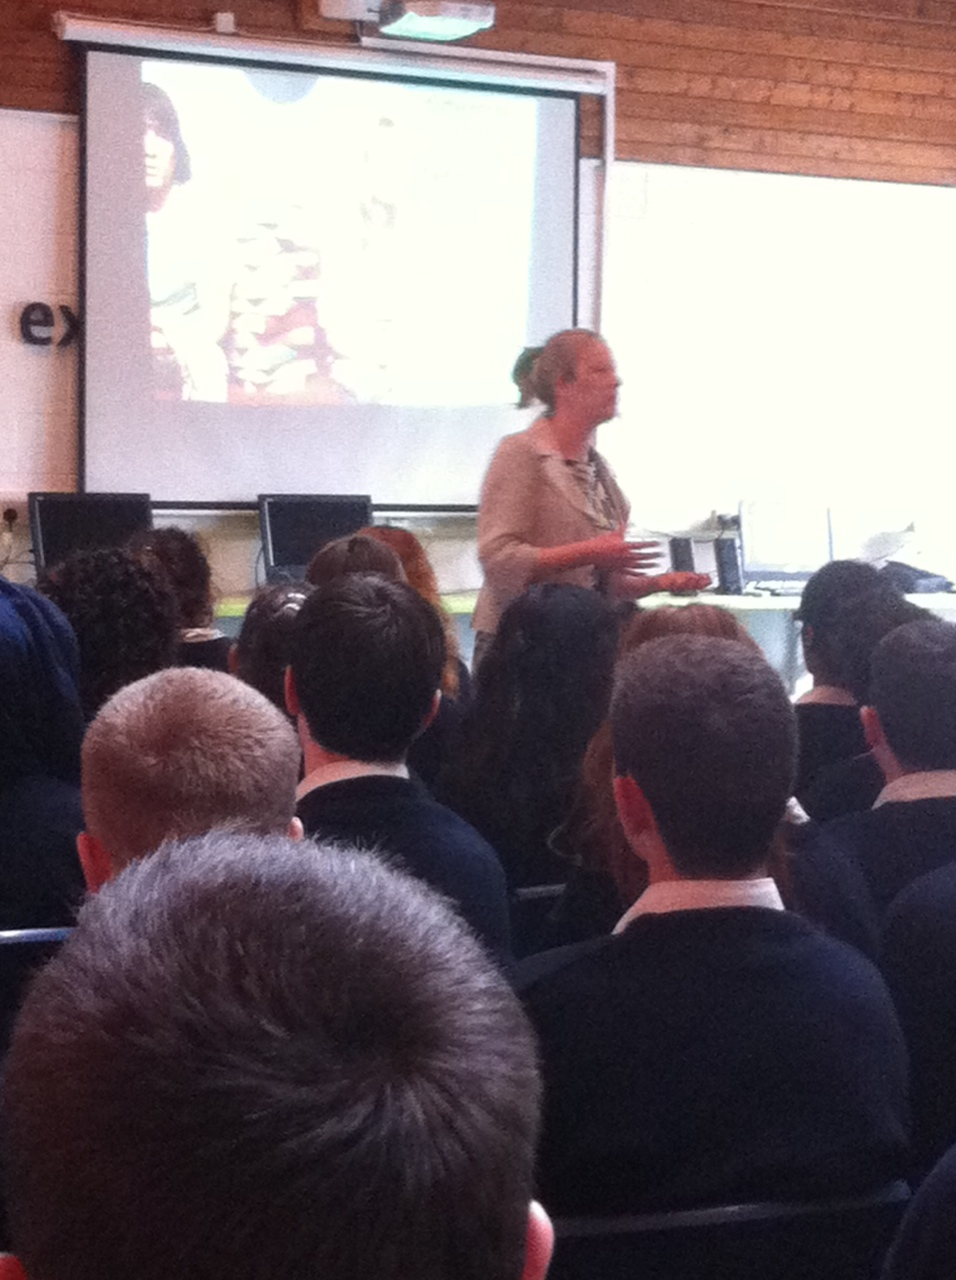 Sheila Purcell Deputy Admissions Officer Maynooth University met with the 6th years students today. She spoke  about student life in Maynooth and the wide range of courses offered. Coláiste Chiaráin is one of the main feeder schools for Maynooth University.